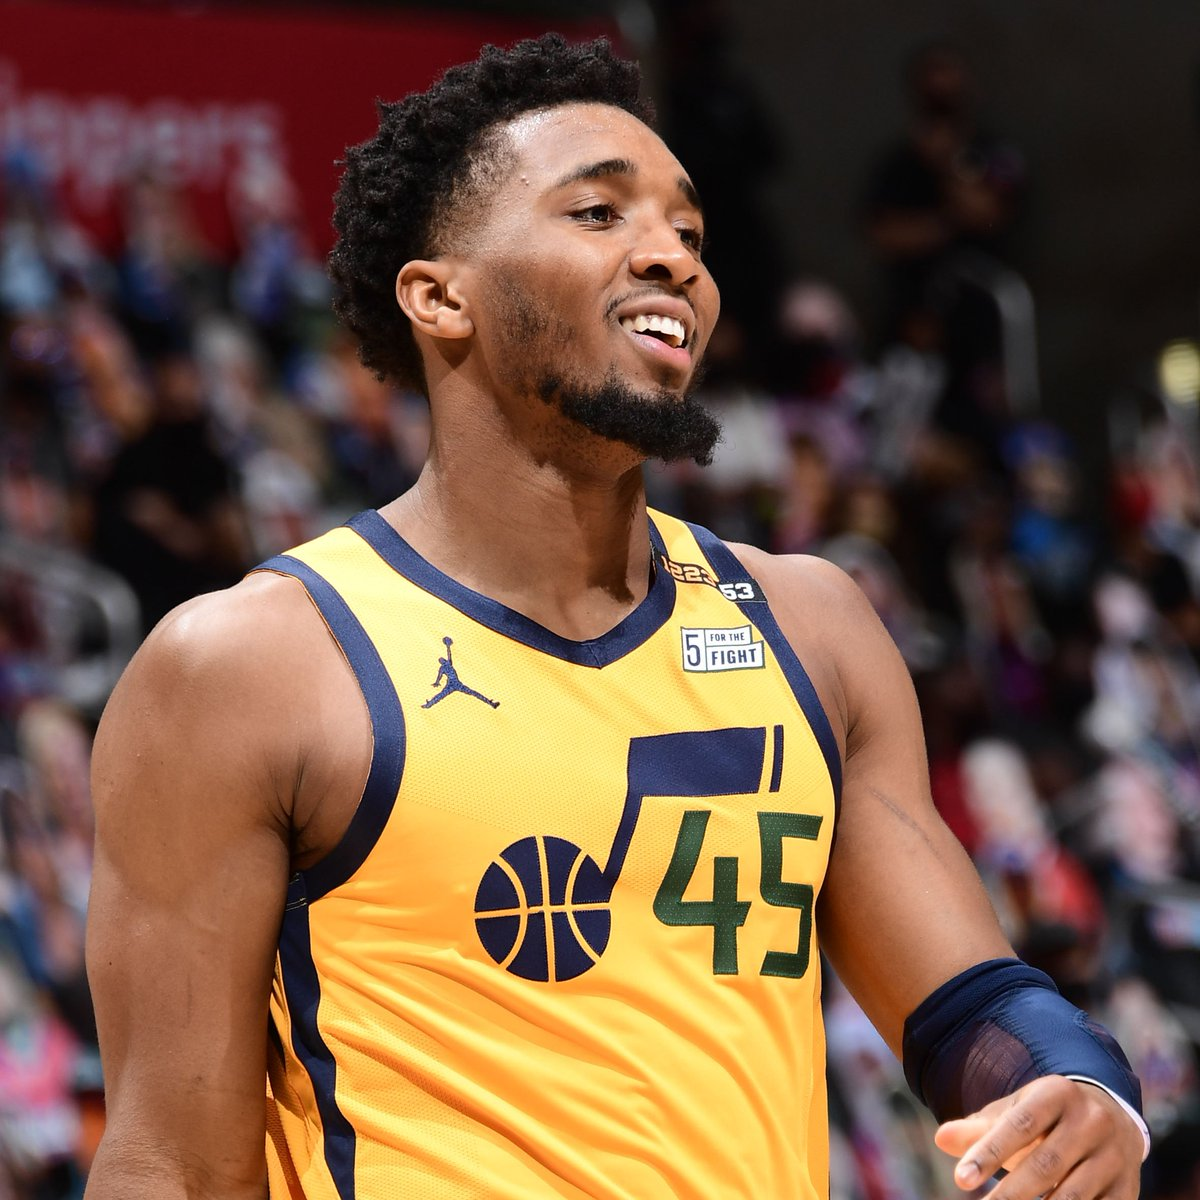 Donovan Mitchell has now recorded 30+ points in 6 consecutive playoff games, tying Karl Malone for the longest streak in @utahjazz franchise history. @EliasSports https://t.co/OHnmbX4xig